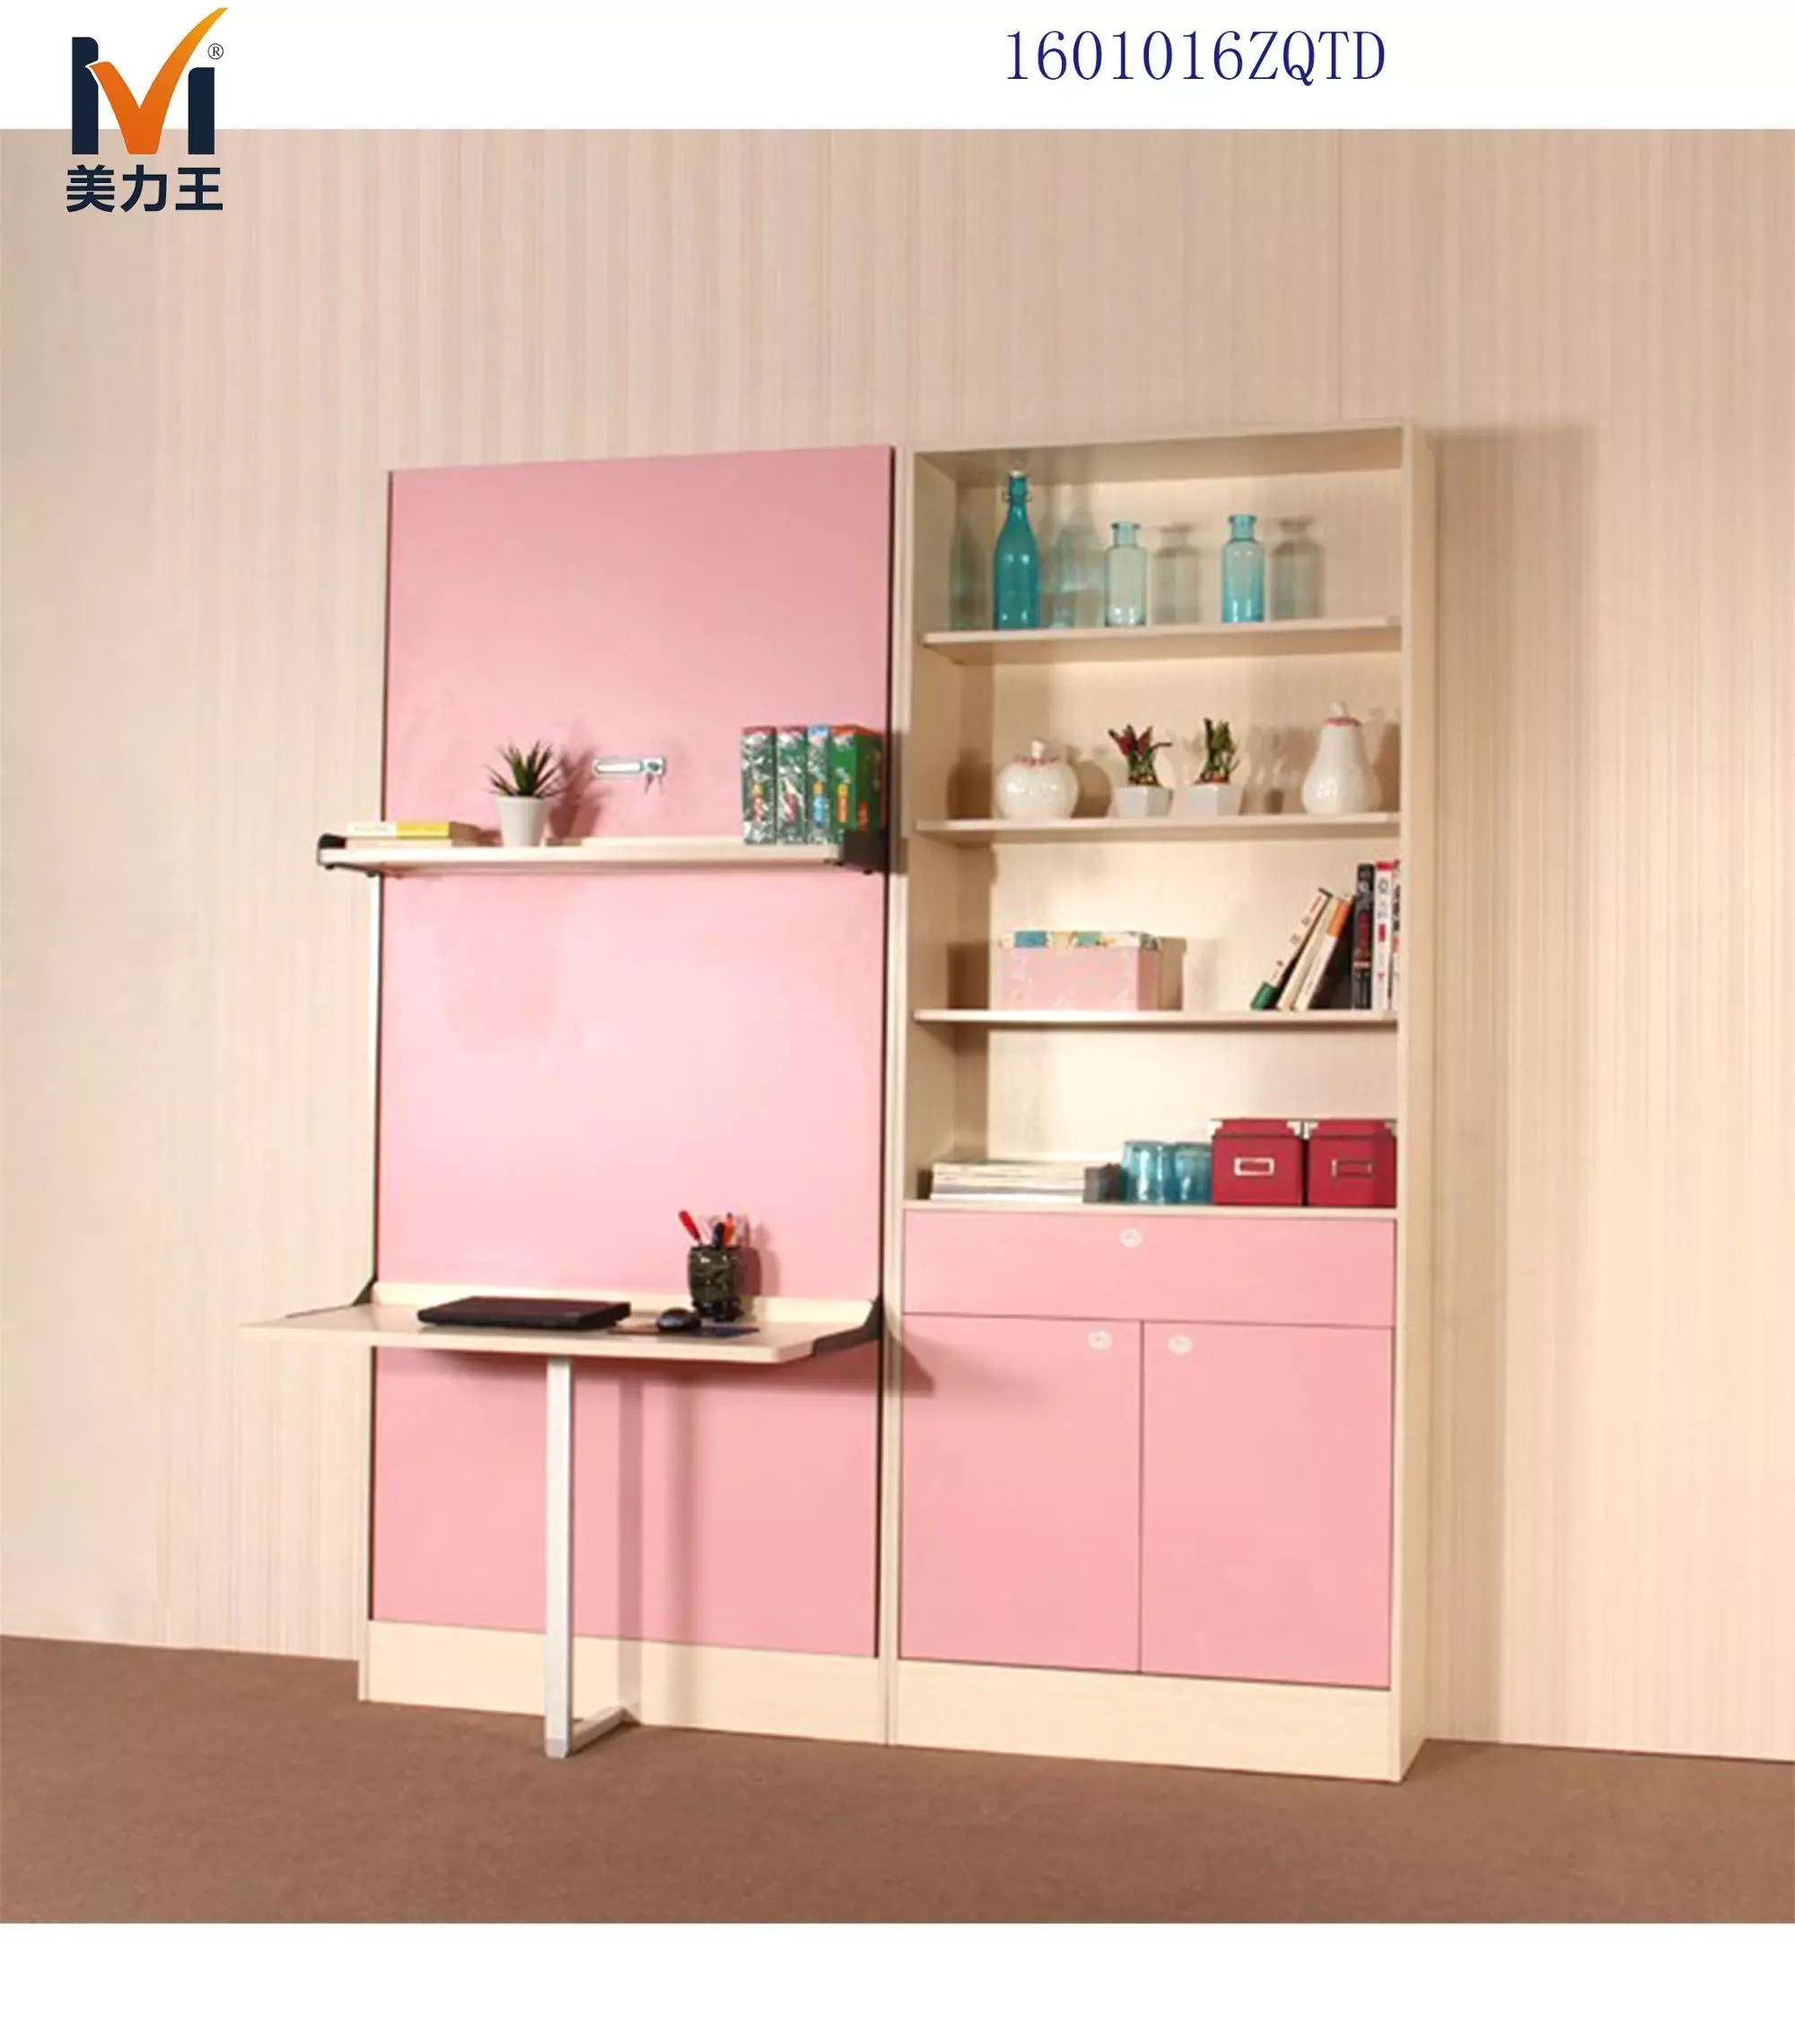 Folding Hidden Wall Bed With Desk And Bookshelf Hardware Accessories Buy Space Saving Murphy Wall Bed Hardware Accessories Multifunction Wall Bed